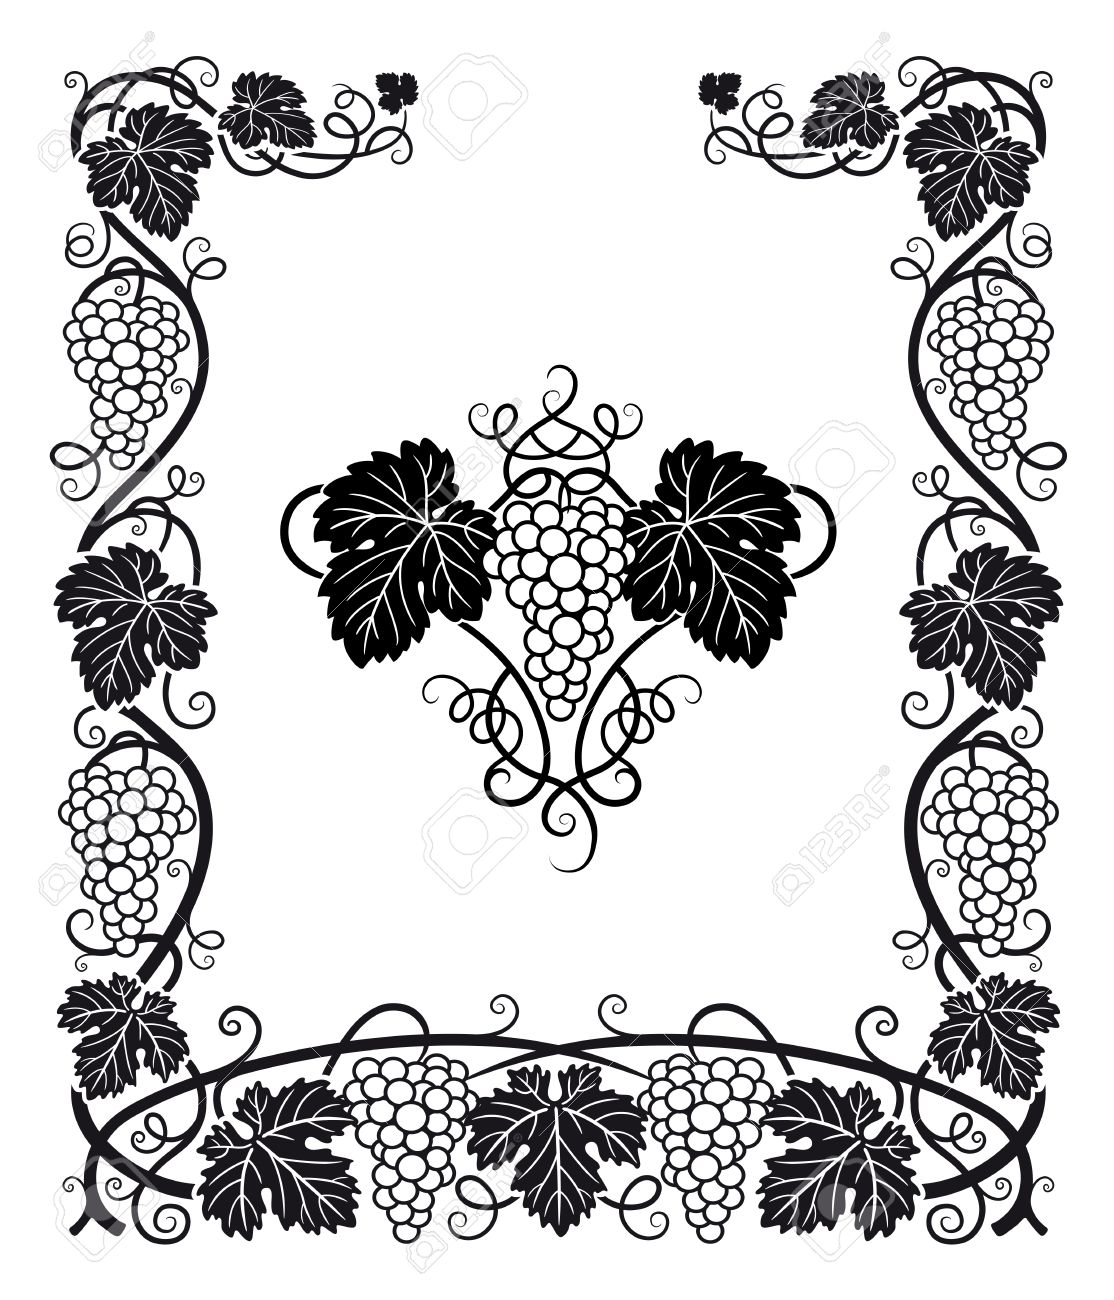 A Beautiful Frame And Center Ornament With Grapes, Vines And ...